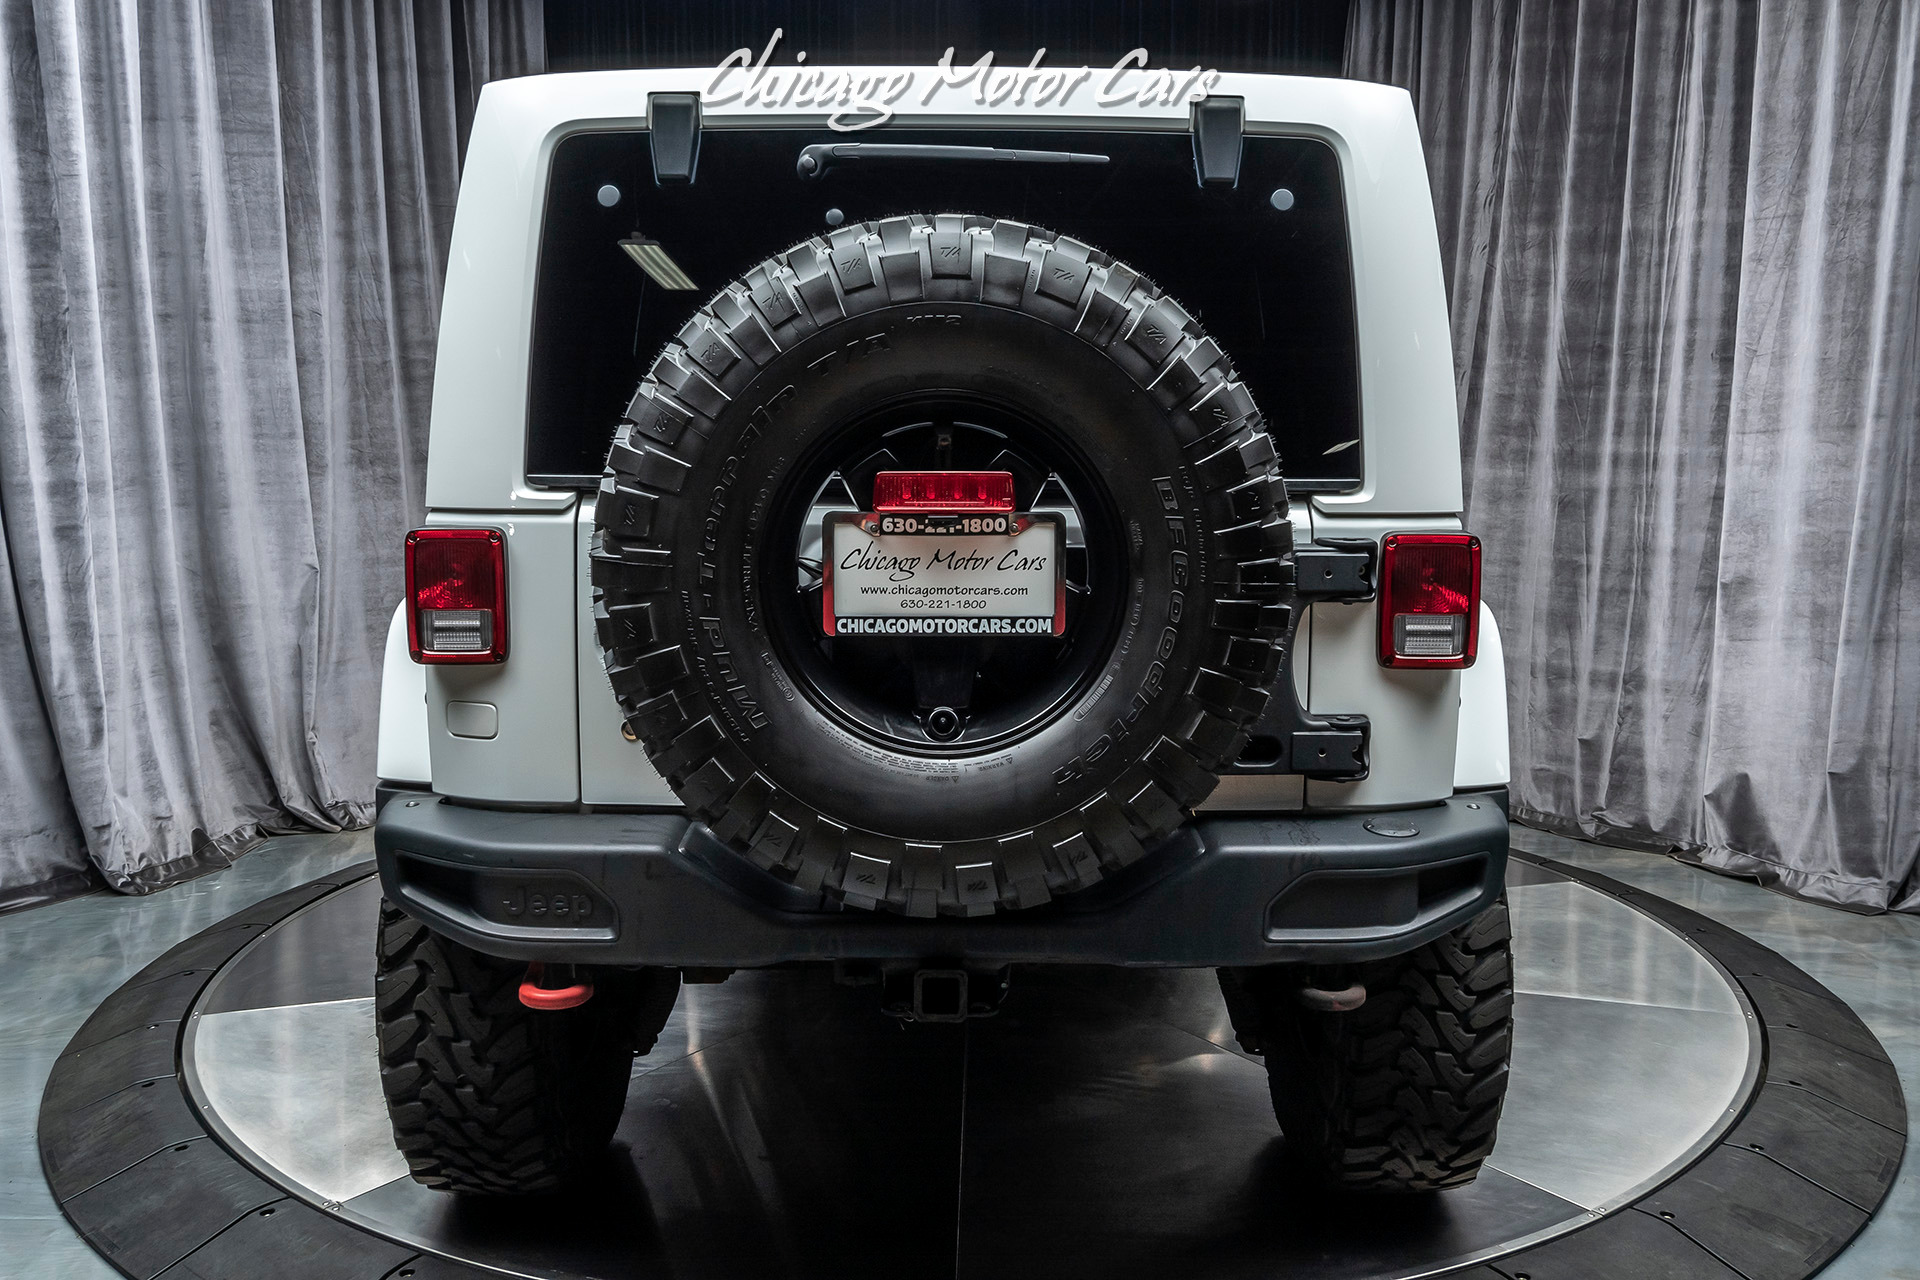 Used-2015-Jeep-Wrangler-Unlimited-Rubicon-X-64L-HEMI-V8-Conversion